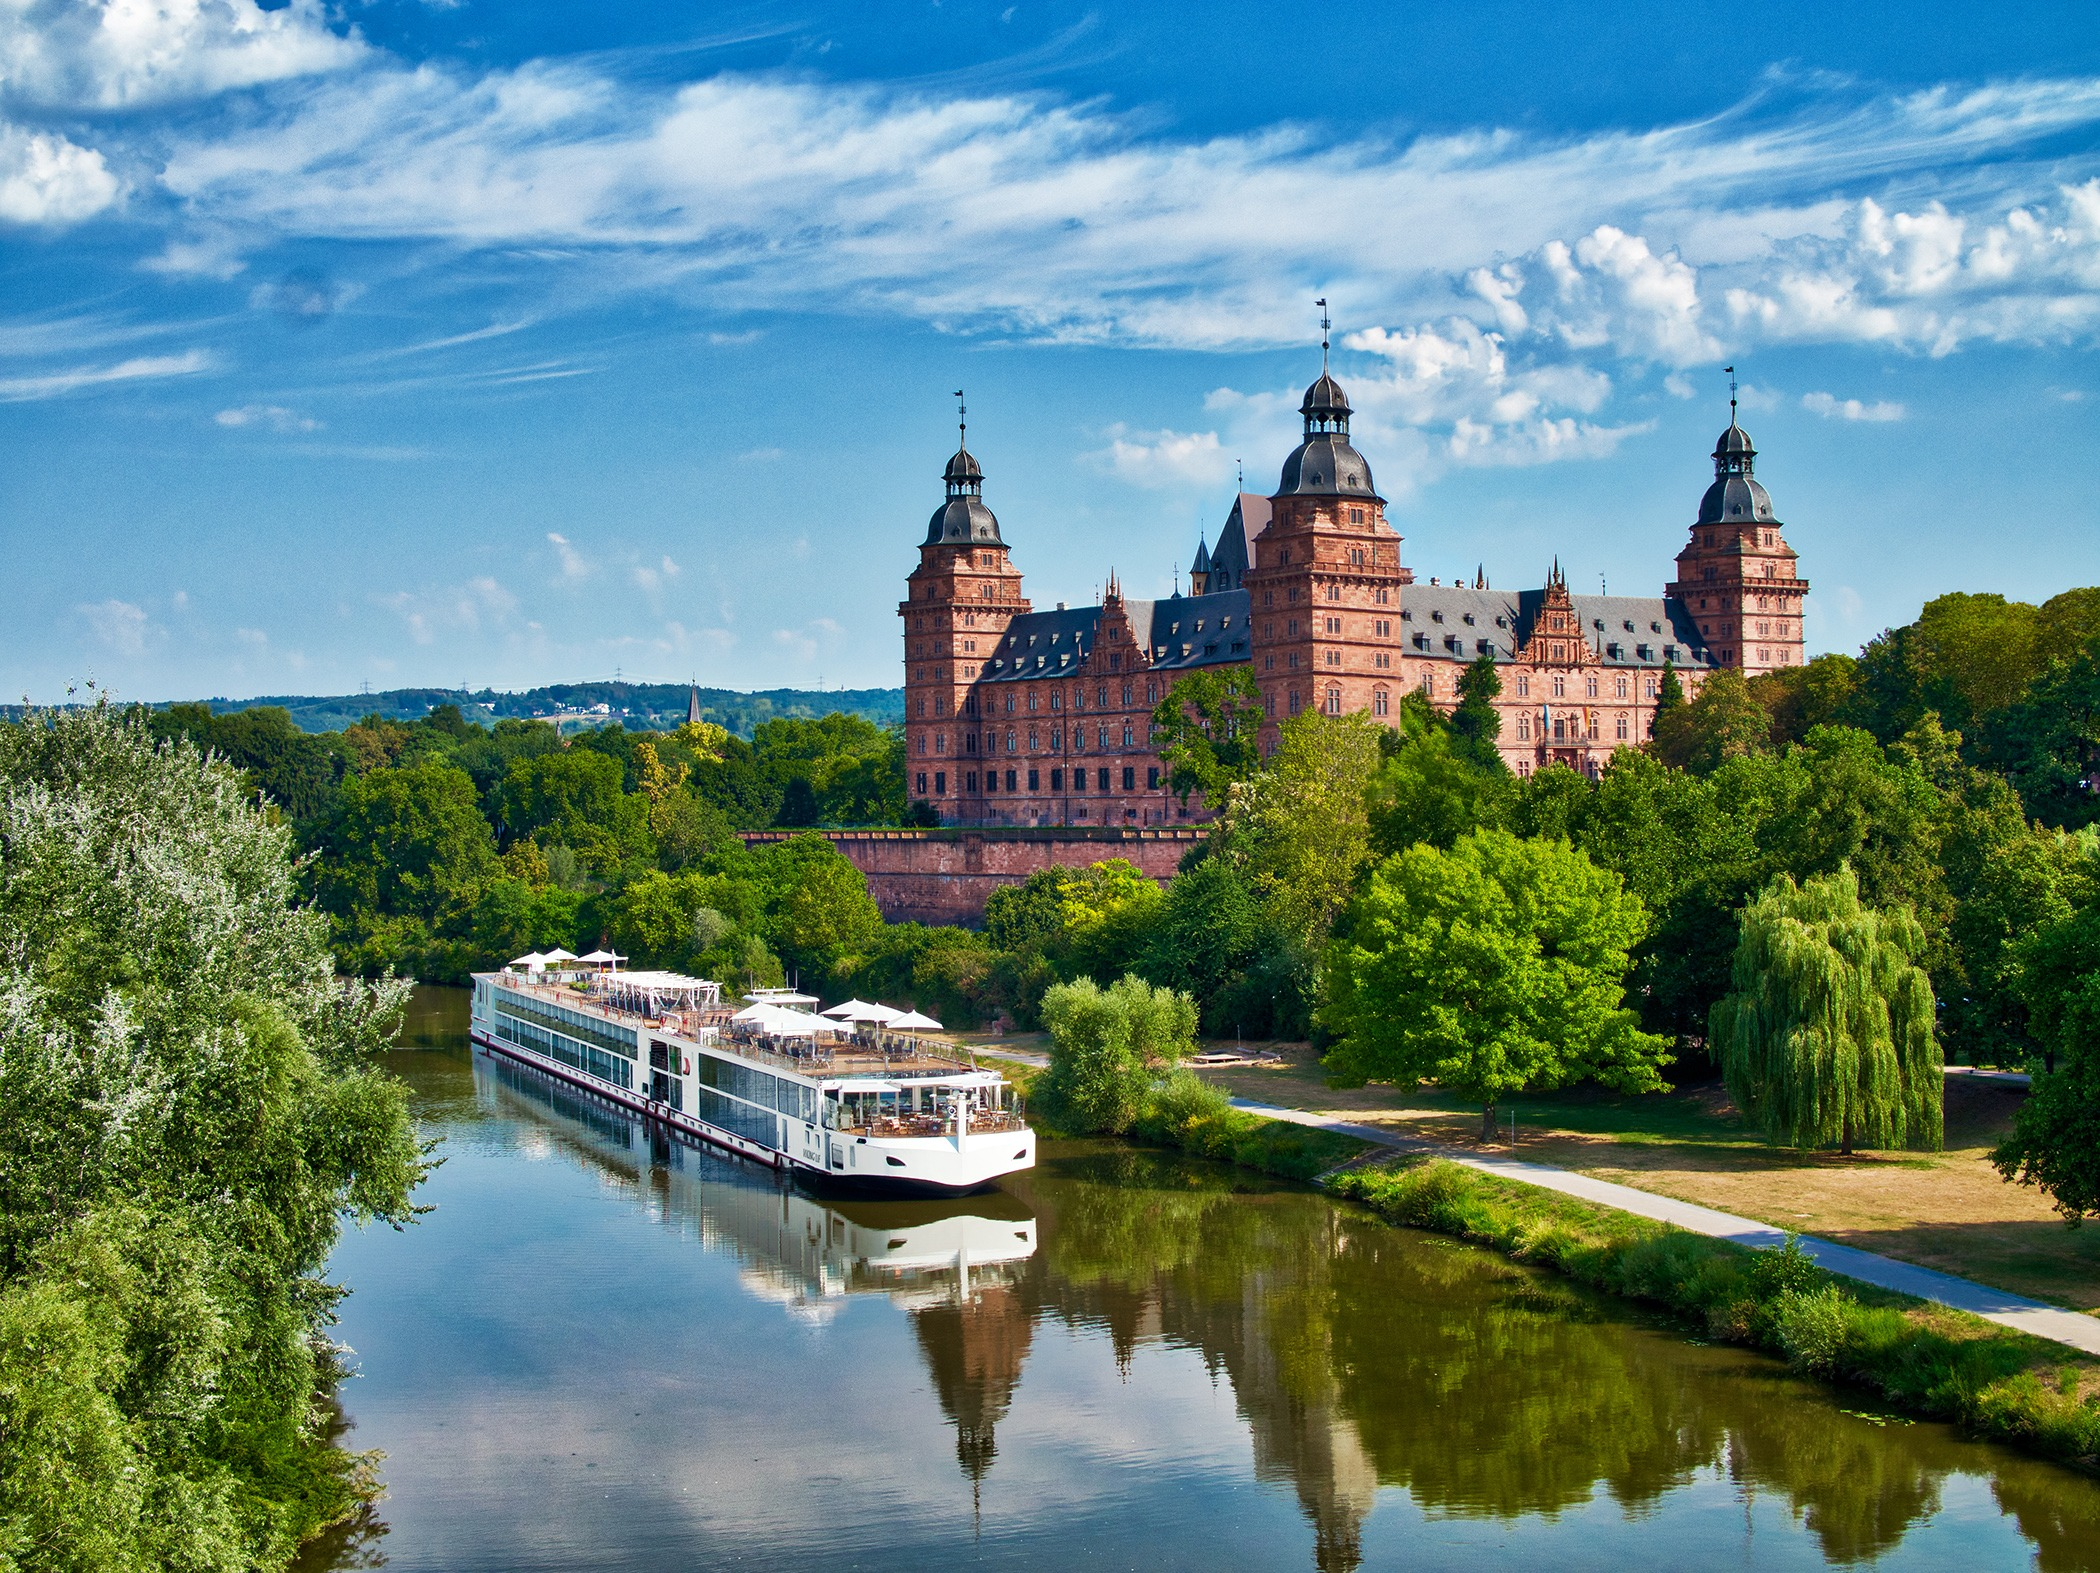 The Viking Longship Lif on the River Main near the Schloss Johannisburg, city of Aschaffenburg, Bavaria, Germany.